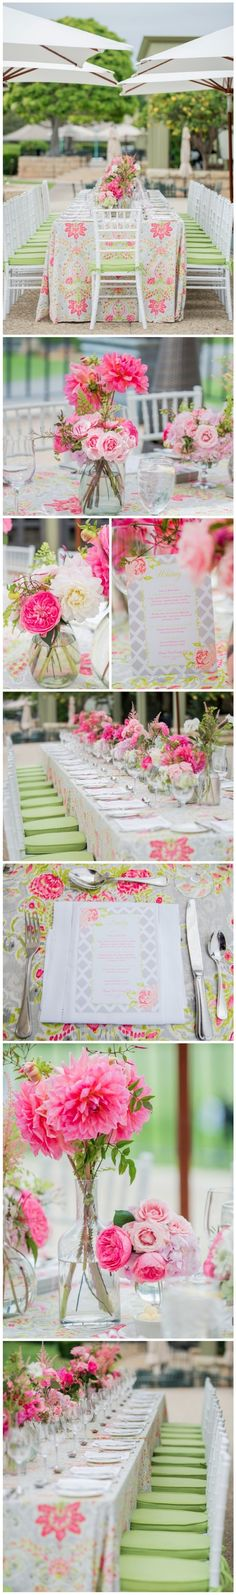 Beautiful Pink and Green Bridal Luncheon at the Country Club » Only on Ooh LaLa La Fete